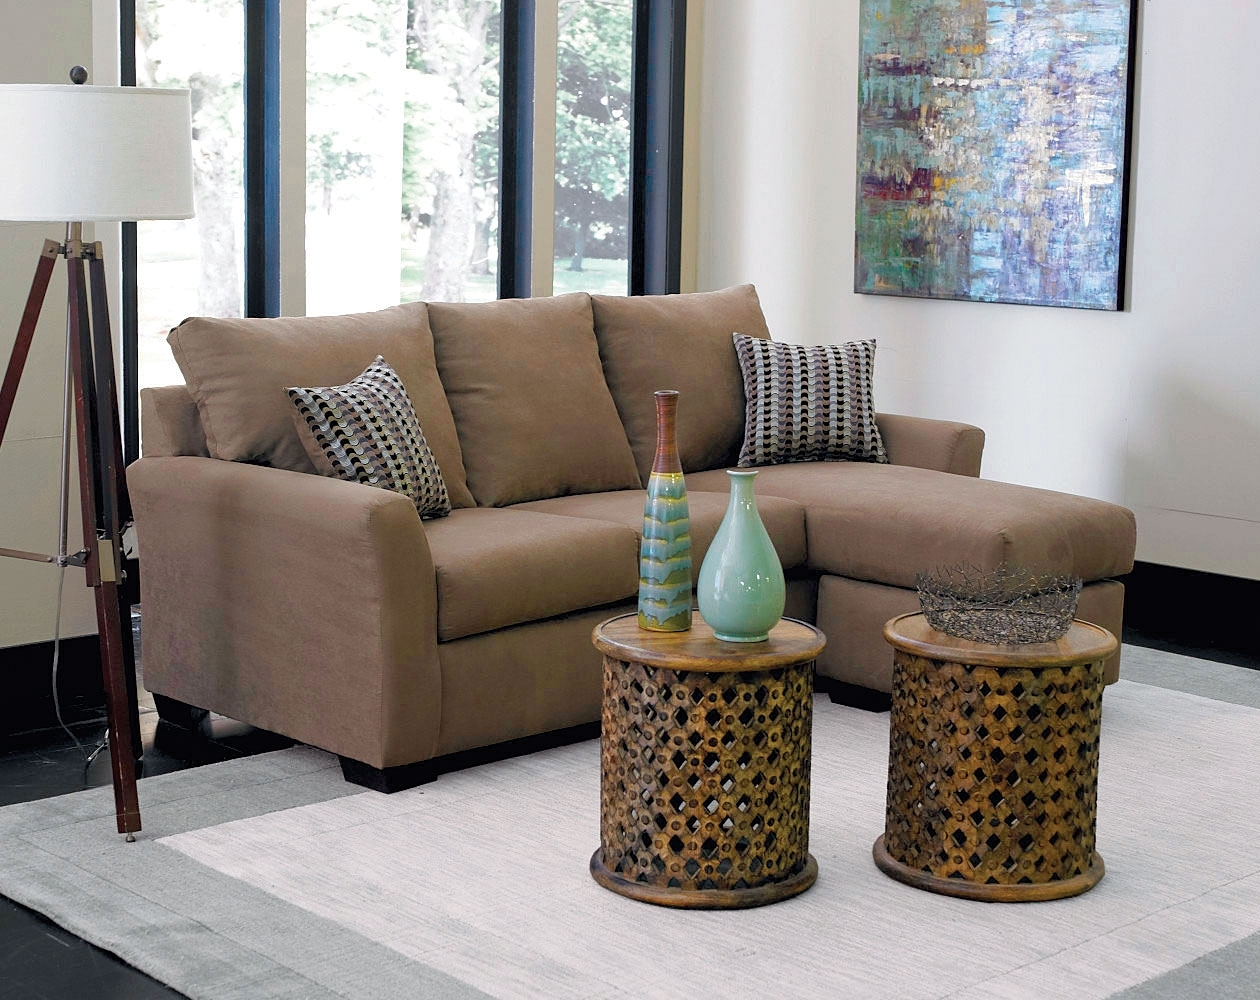 Stupendous American Furniture Near Me Nice Decoration American Throughout Gilbert Az Sectional Sofas (Image 10 of 10)